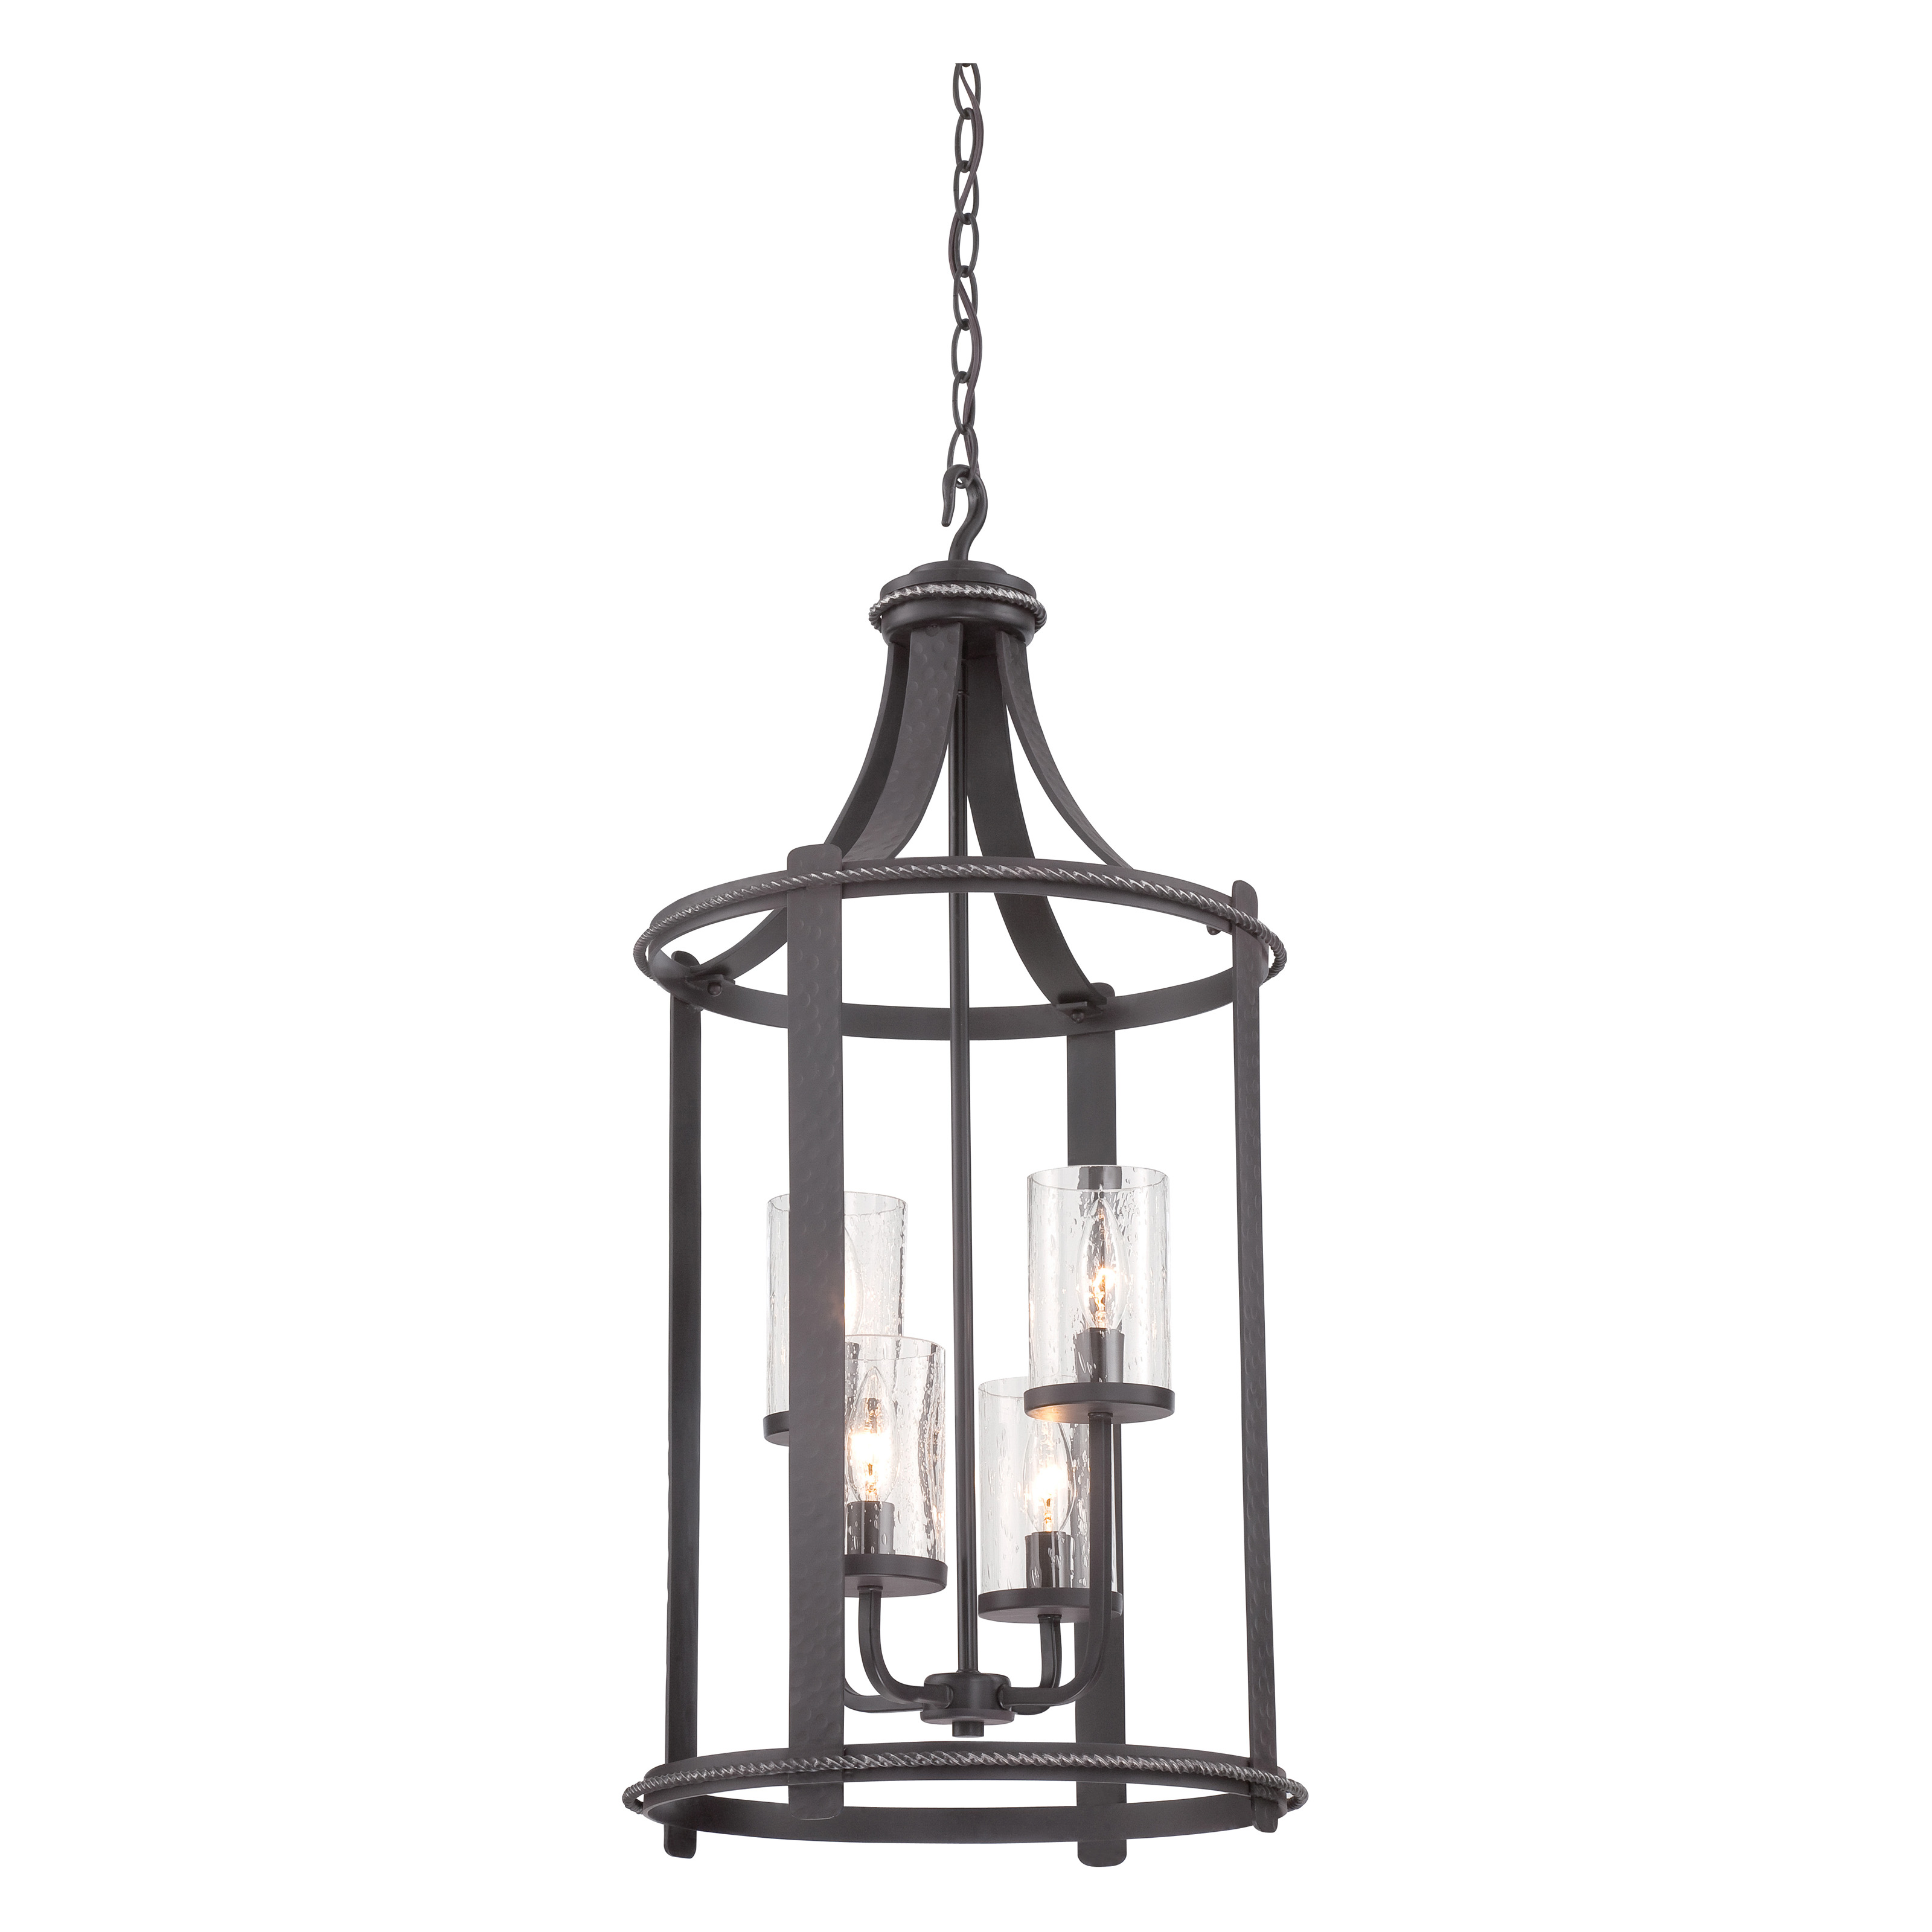 Designers Fountain Palencia Apw Foyer Chandelier